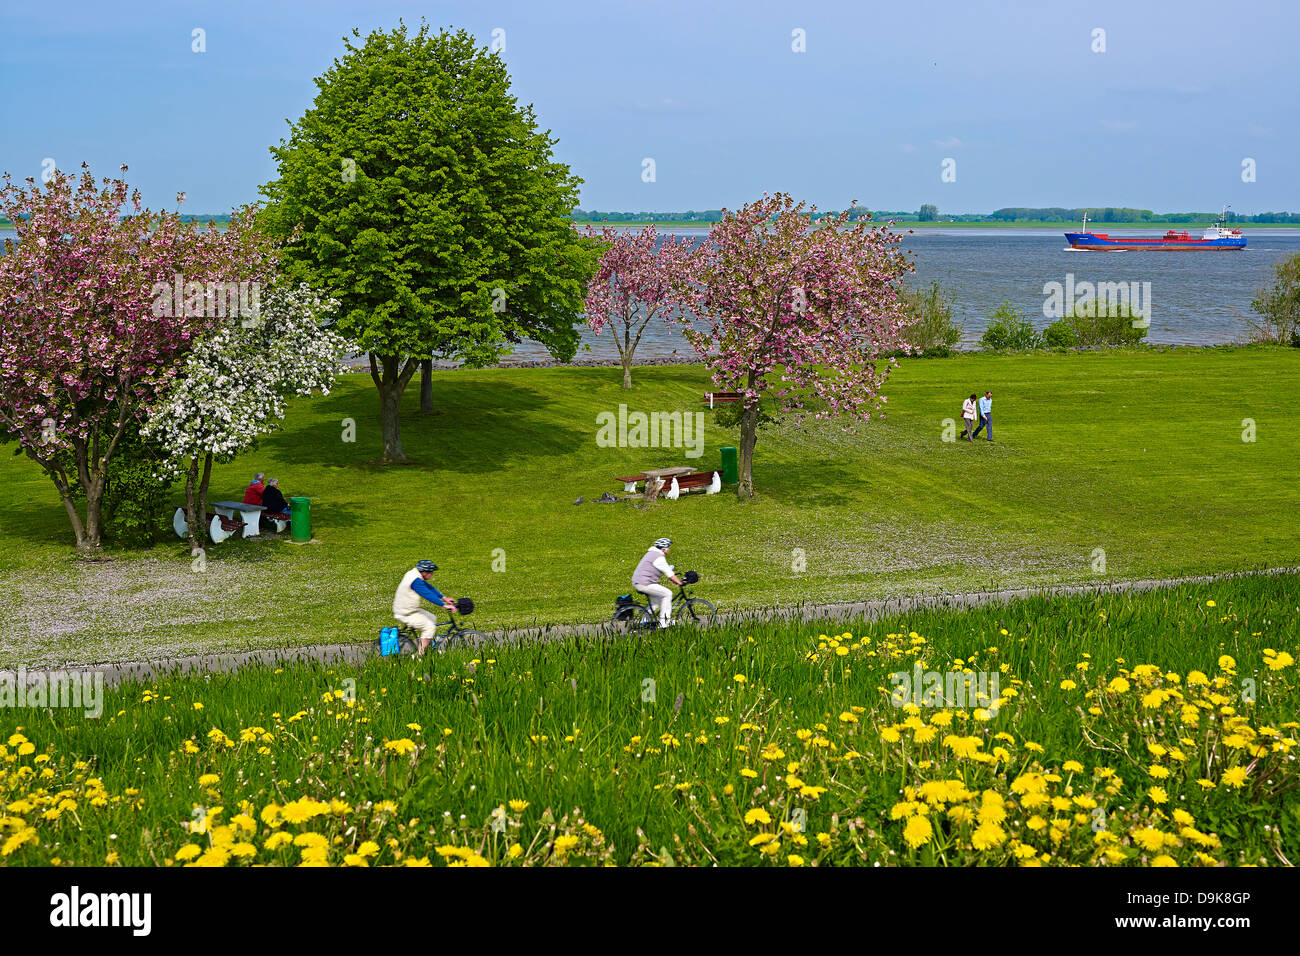 On the Elbe River near Gruenendeich, Altes Land, Stade District, Lower Saxony, Germany Stock Photo